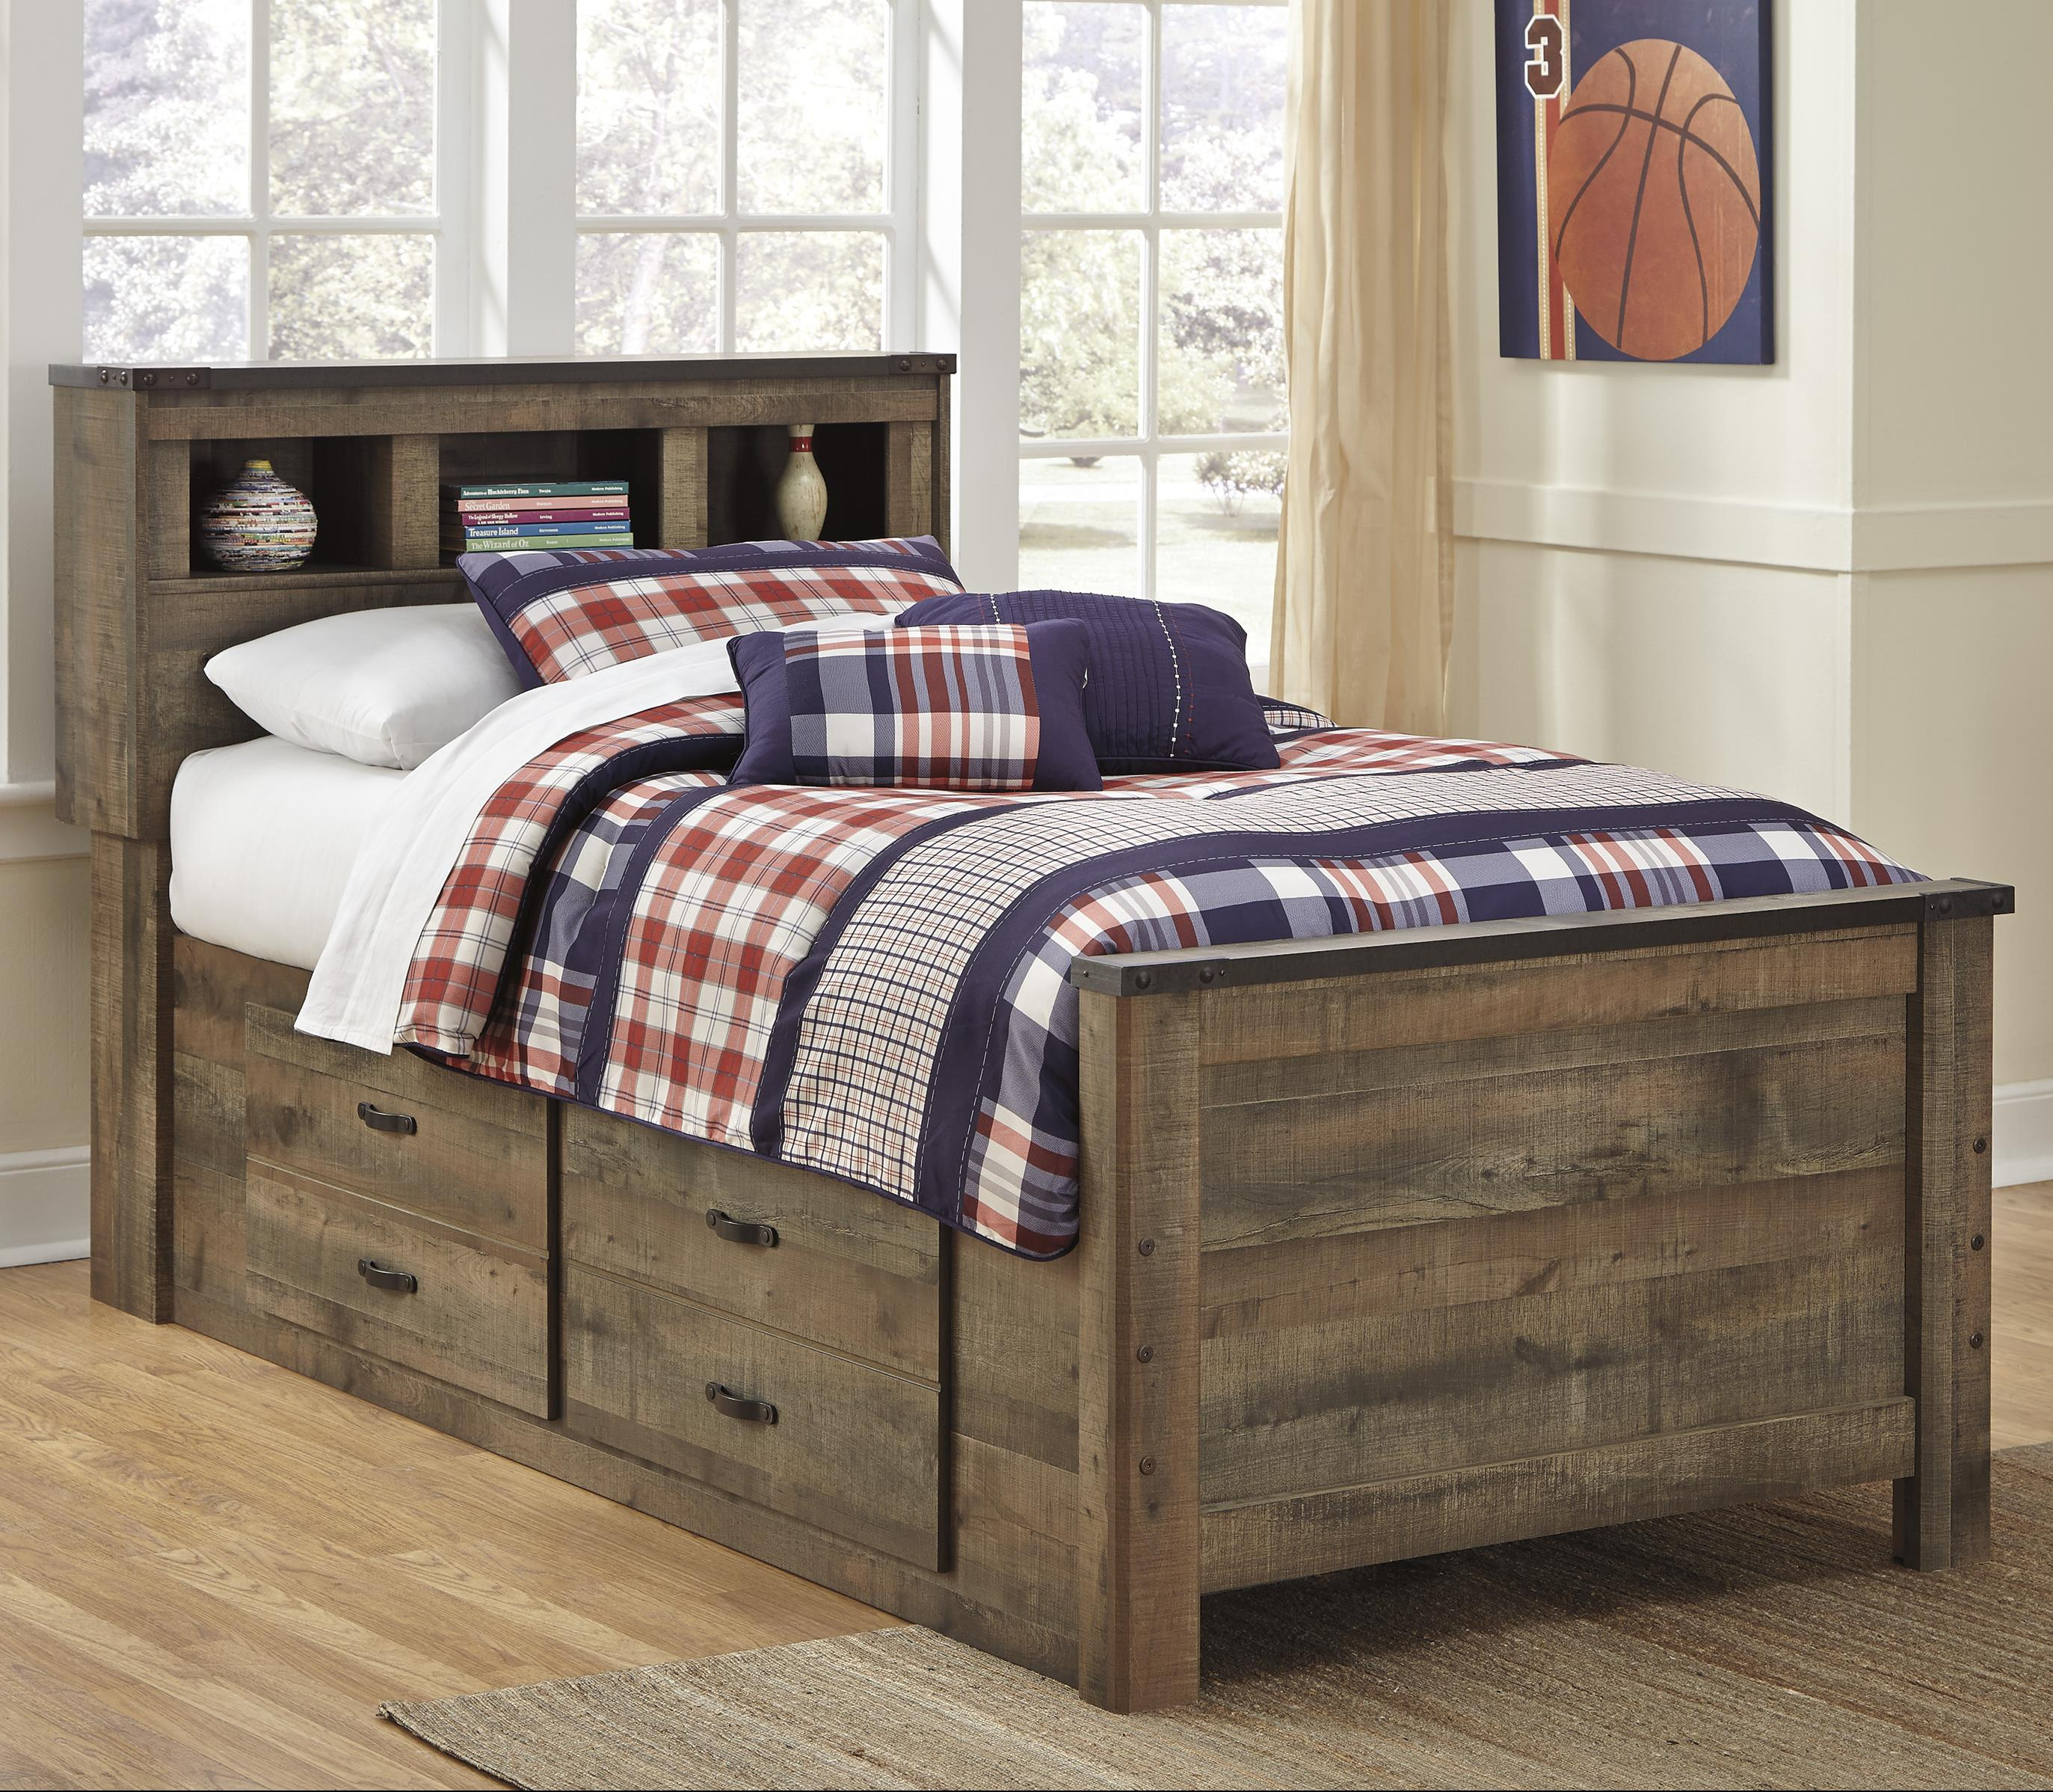 Ashley Signature Design Trinell Rustic Look Twin Bookcase Bed With Under Bed Storage Dunk